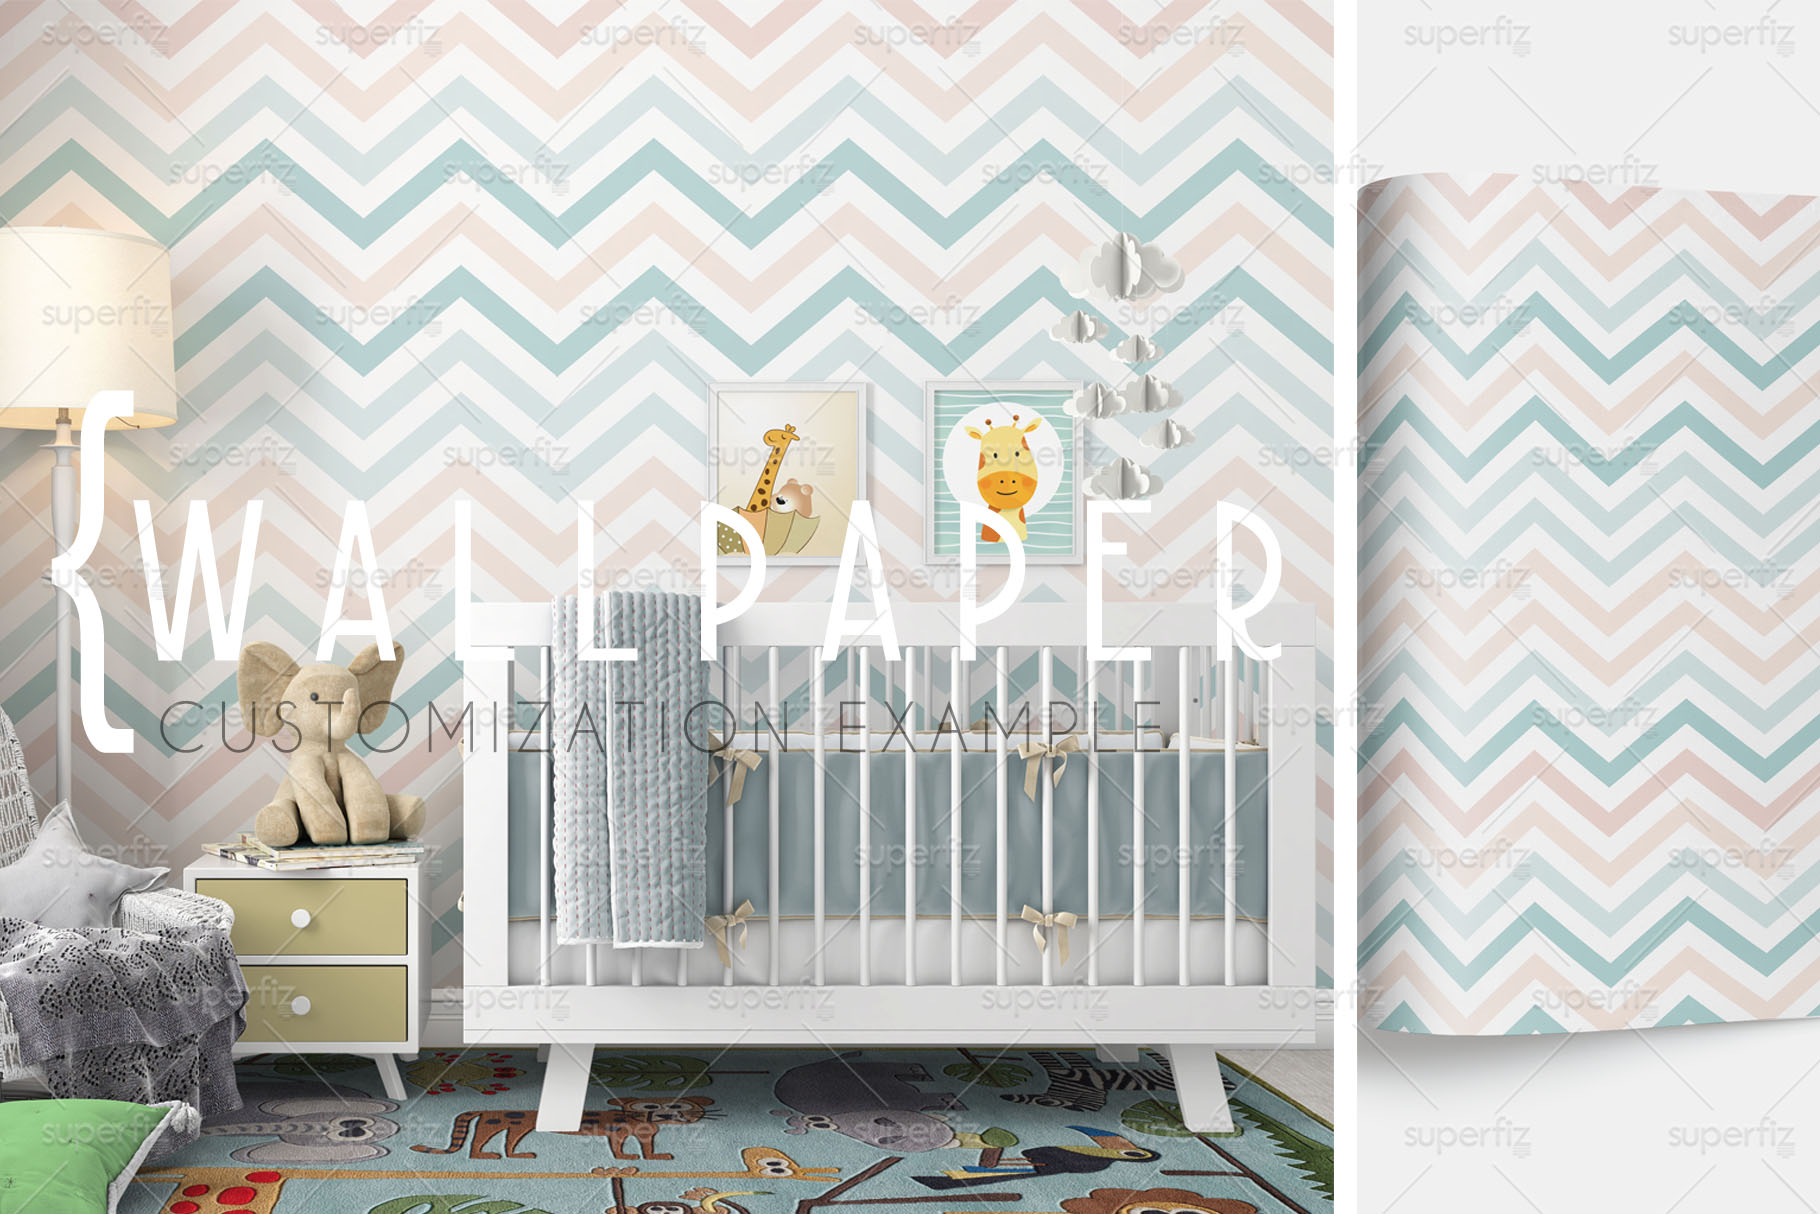 Wallpaper, floor, carpet and frame Mockup Baby Bedroom SM60 example image 6